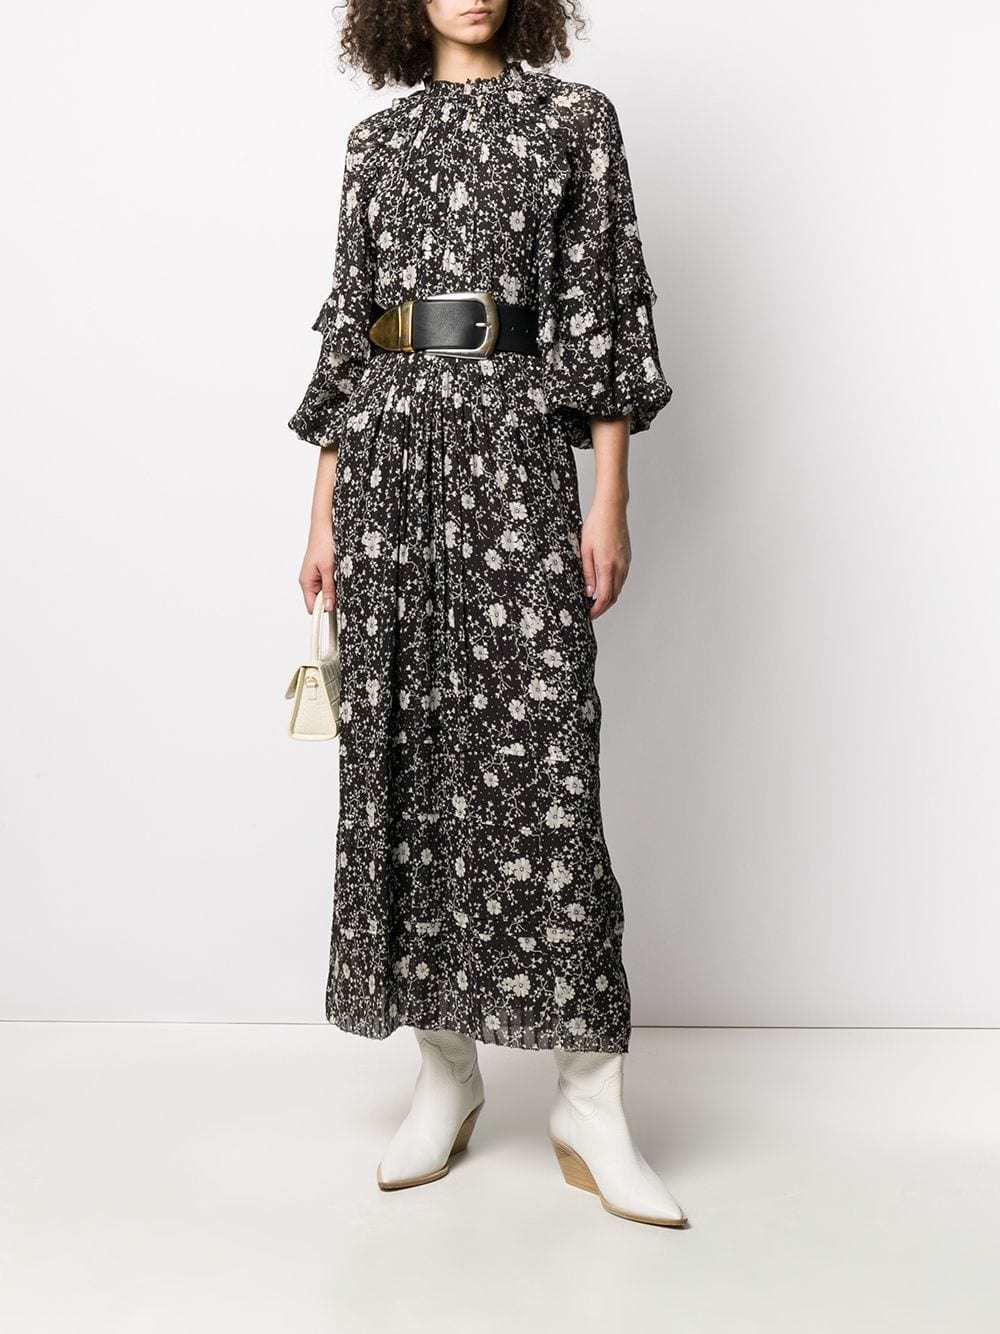 ISABEL MARANT ÉTOILE Estine Floral Print Long Dress